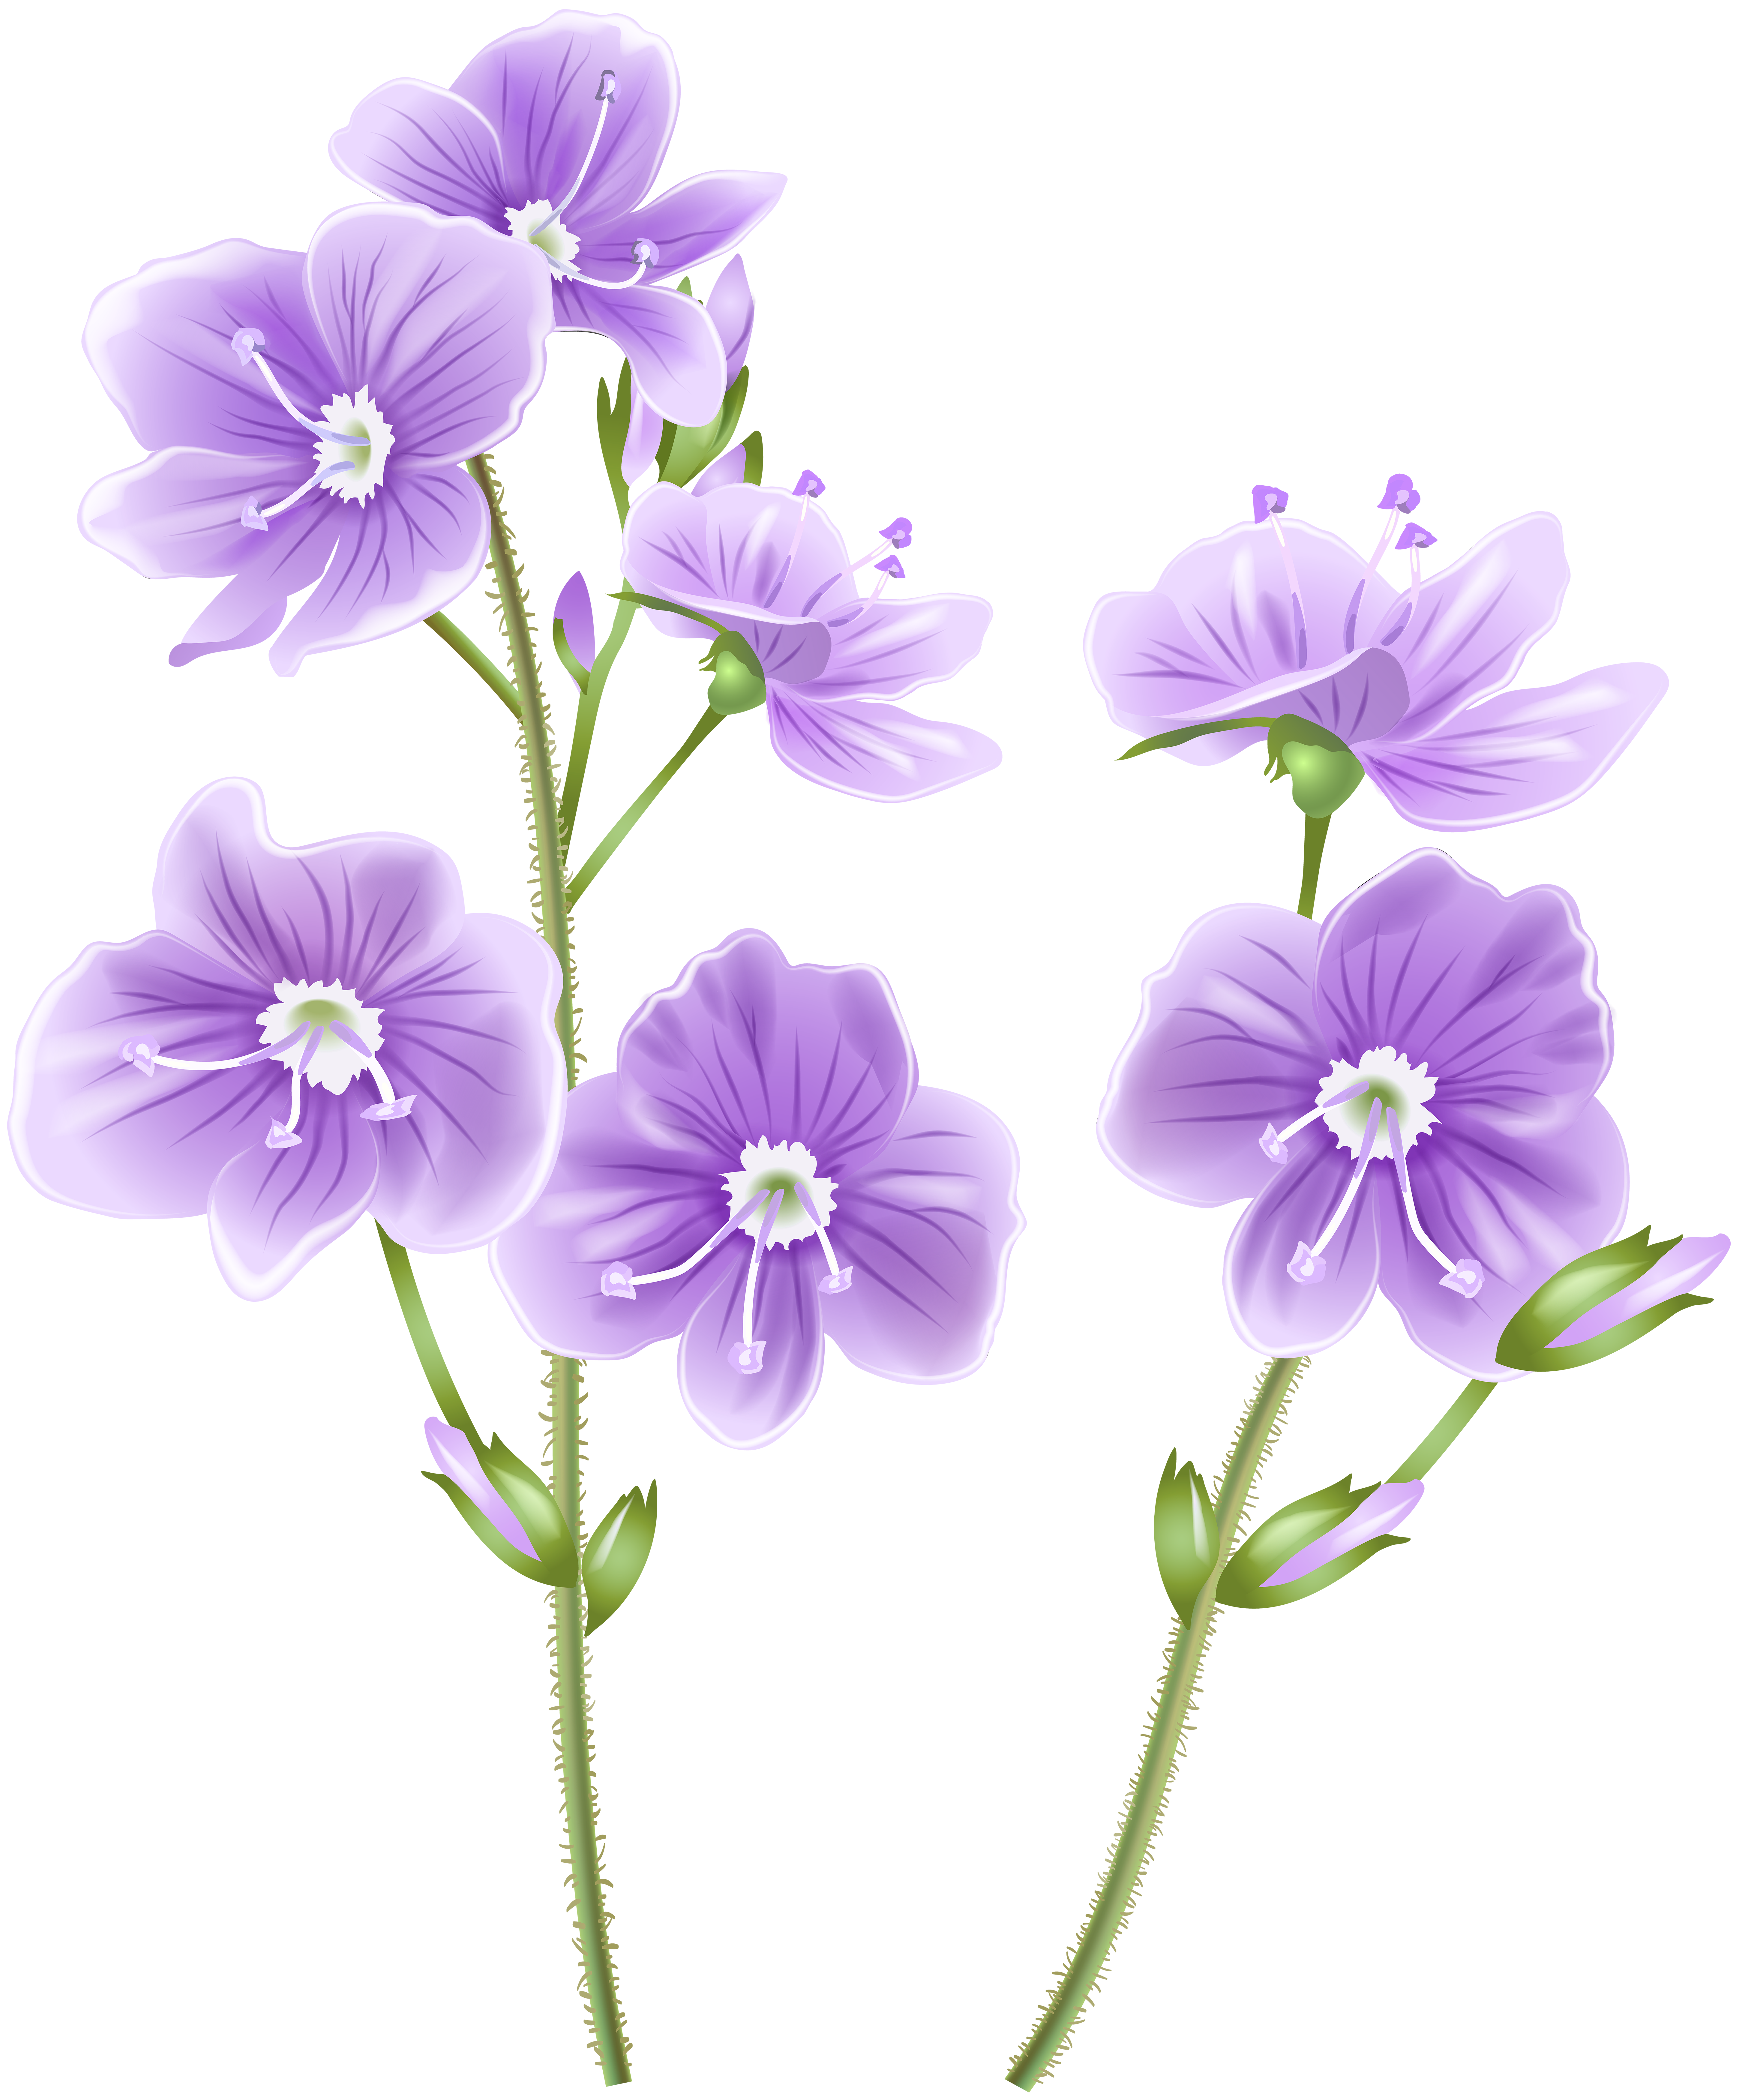 Flower png clip art. Free clipart of wild flowers